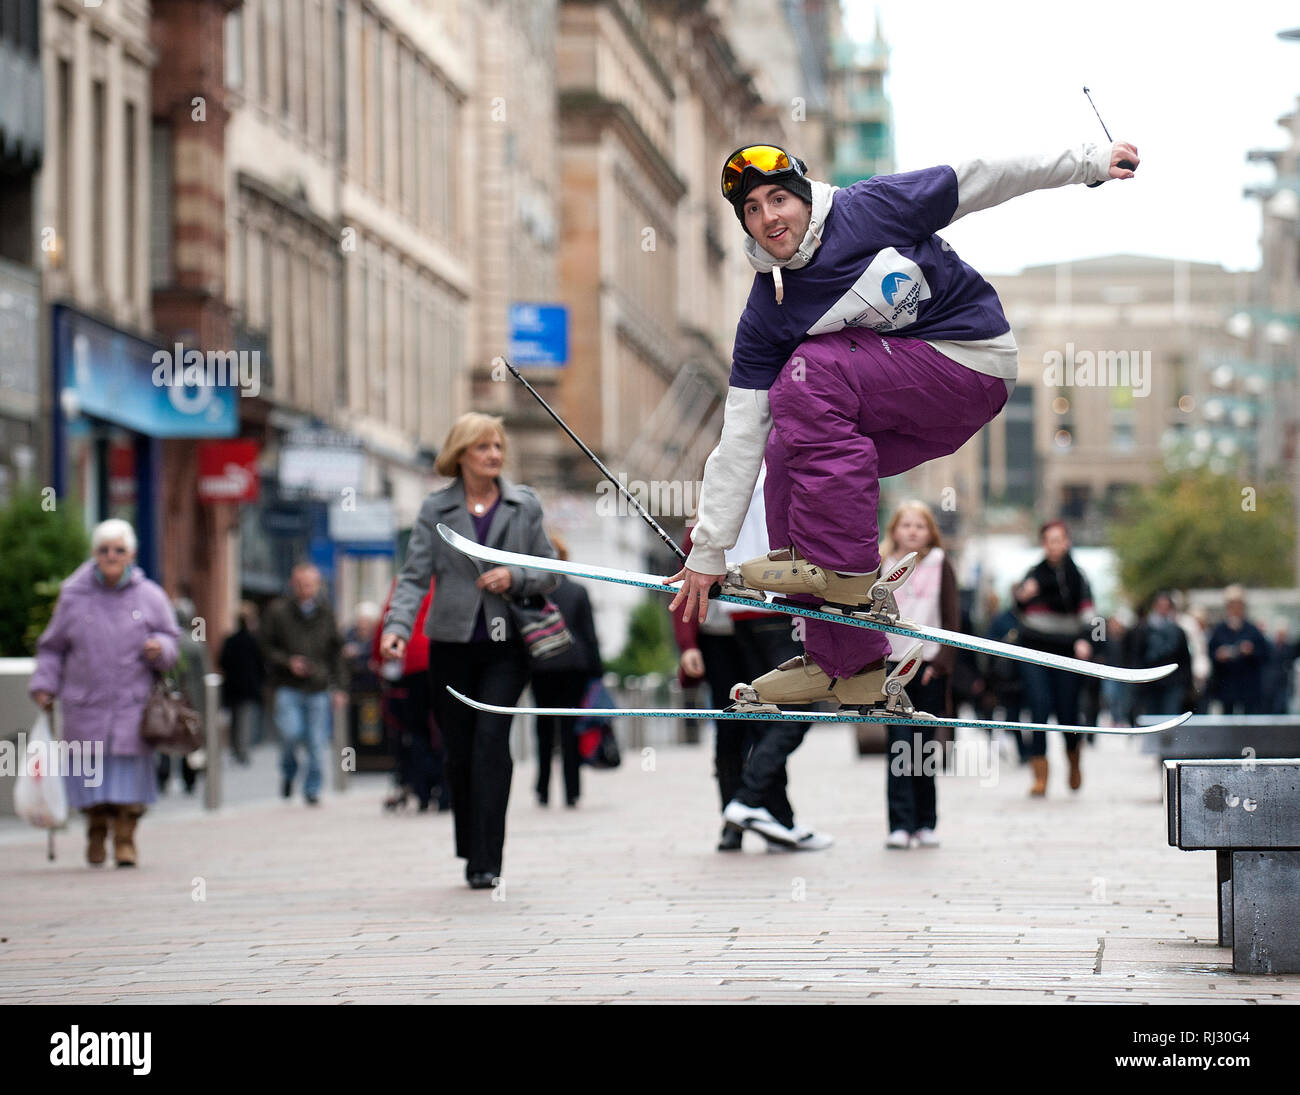 Top Skier Cameron Nicol encourages the public to try out skiing on Buchanan Street ahead of Scotland's Ski & Snowboard Show at the SECC this weekend.  - Stock Image